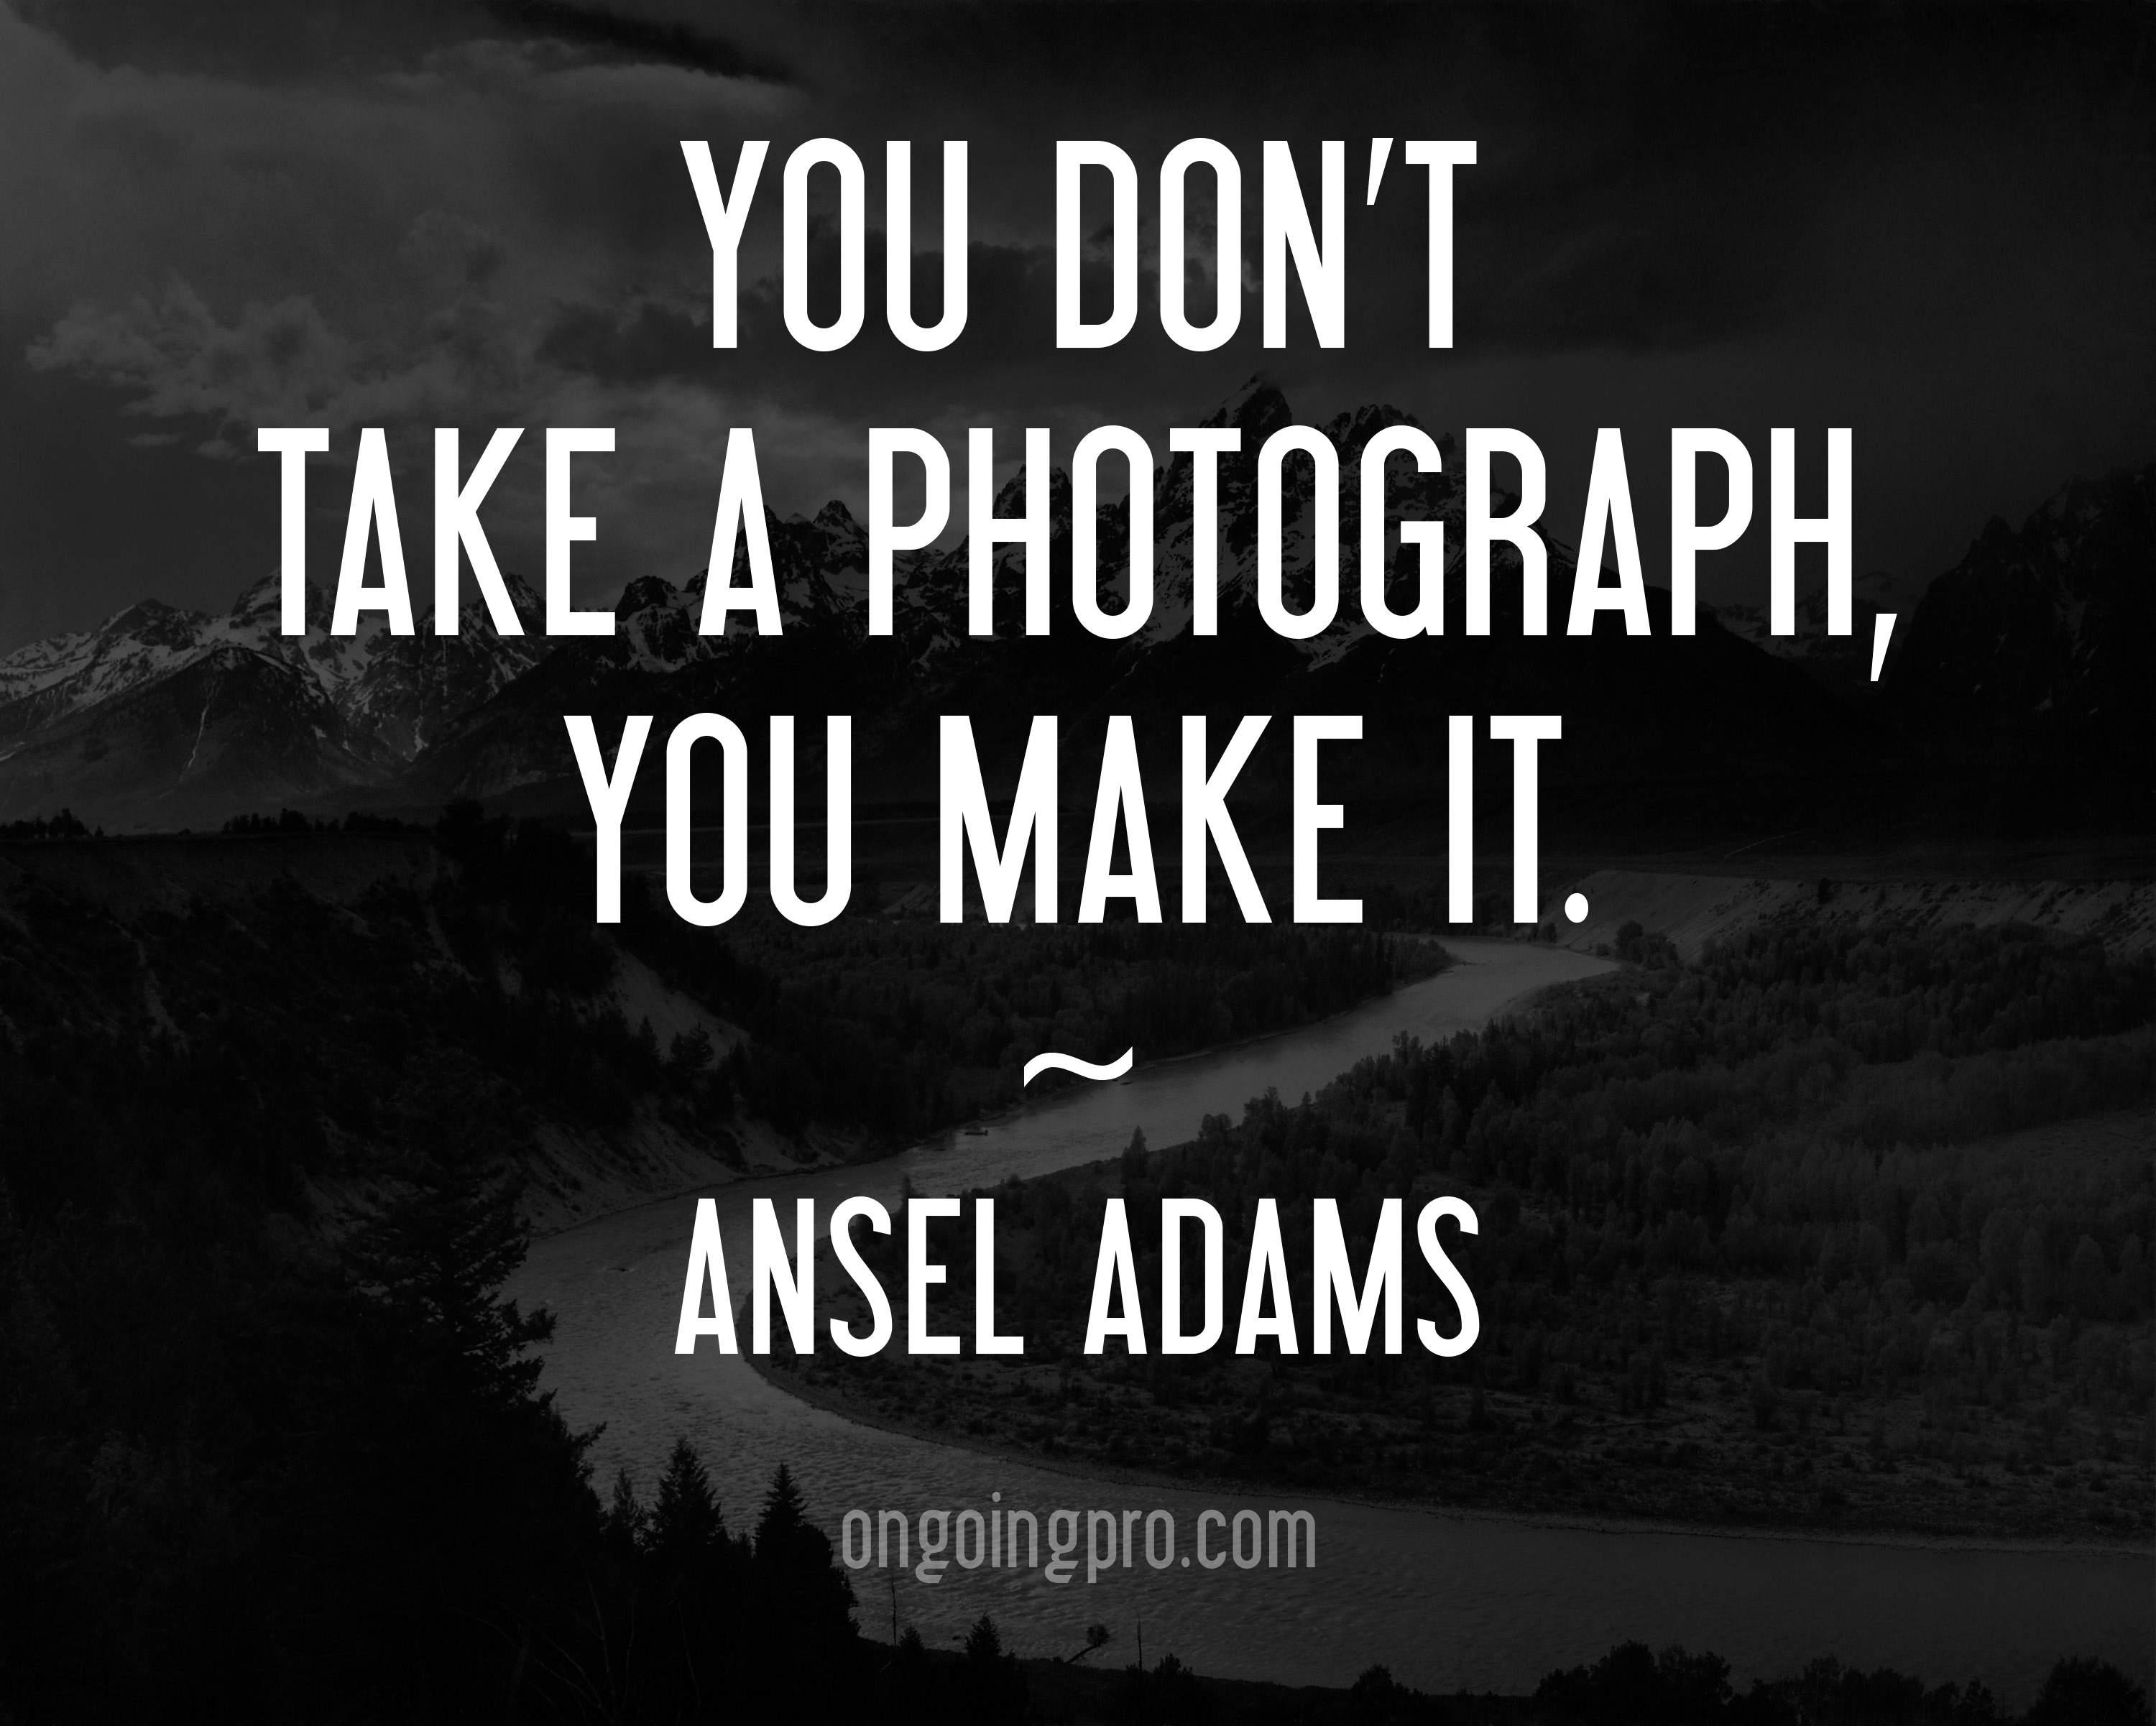 Ansel adams famous photographers quotes